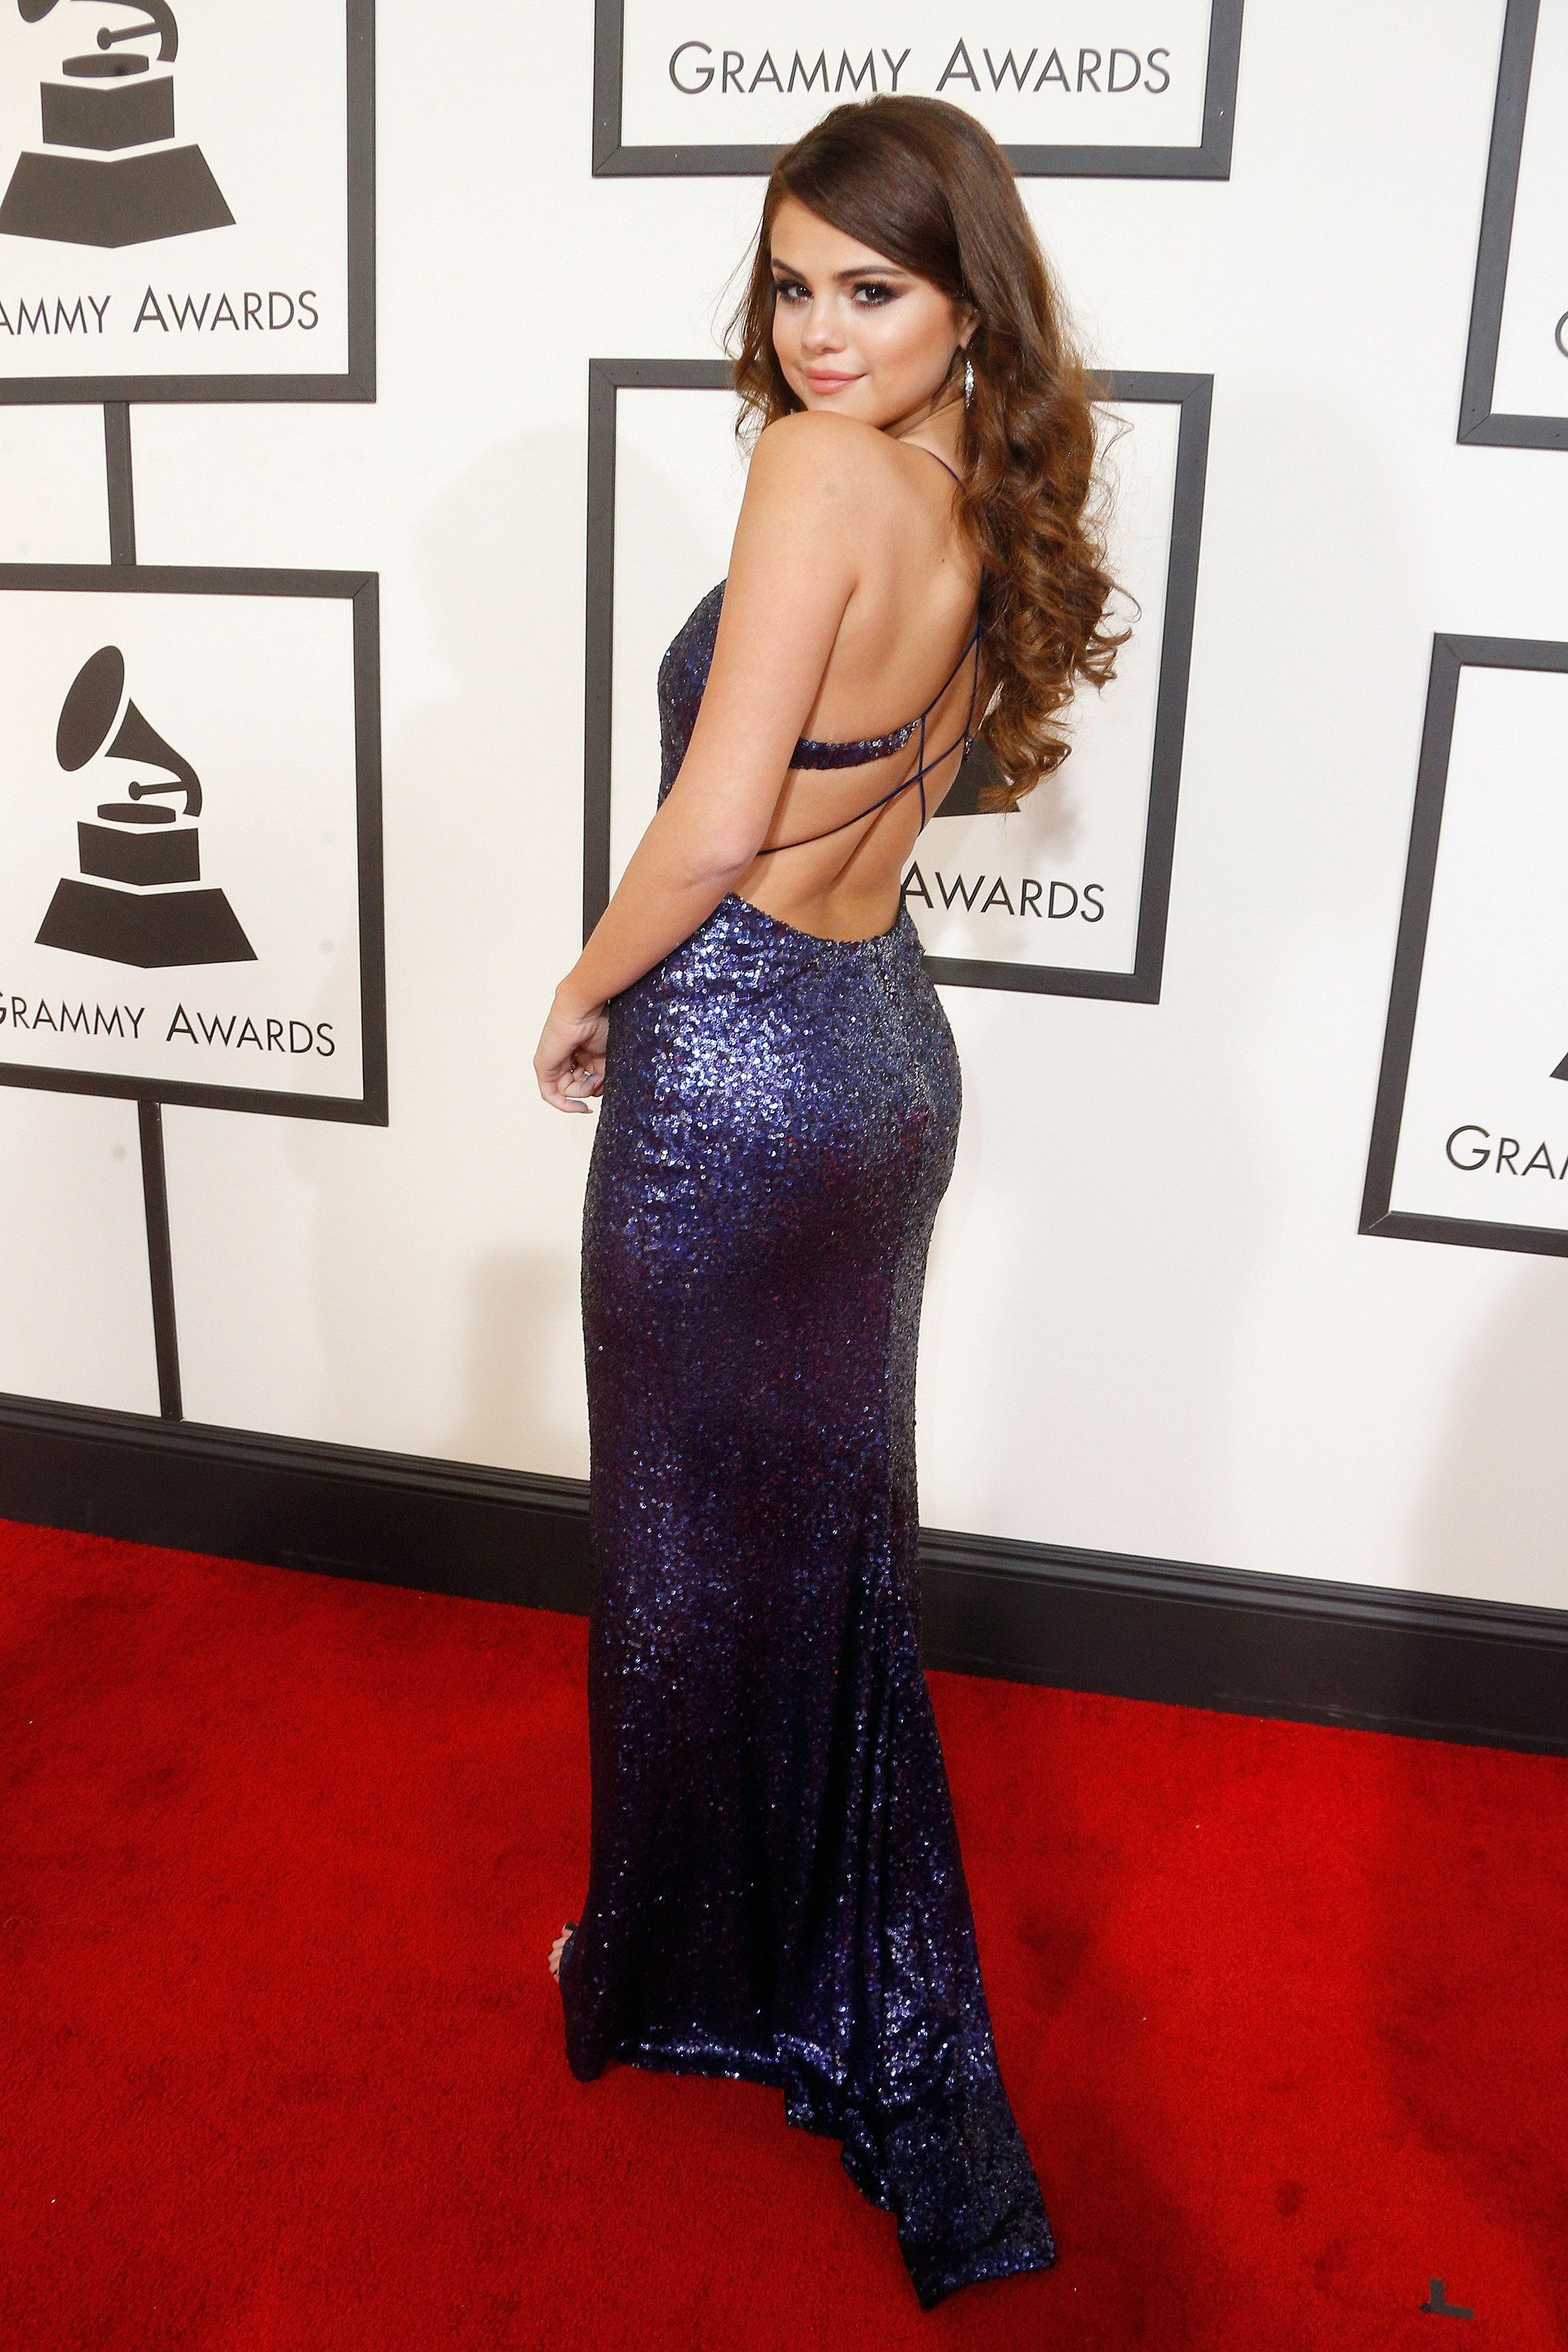 Does Selena Gomez\'s Sequined Mermaid Gown Take You by Surprise ...